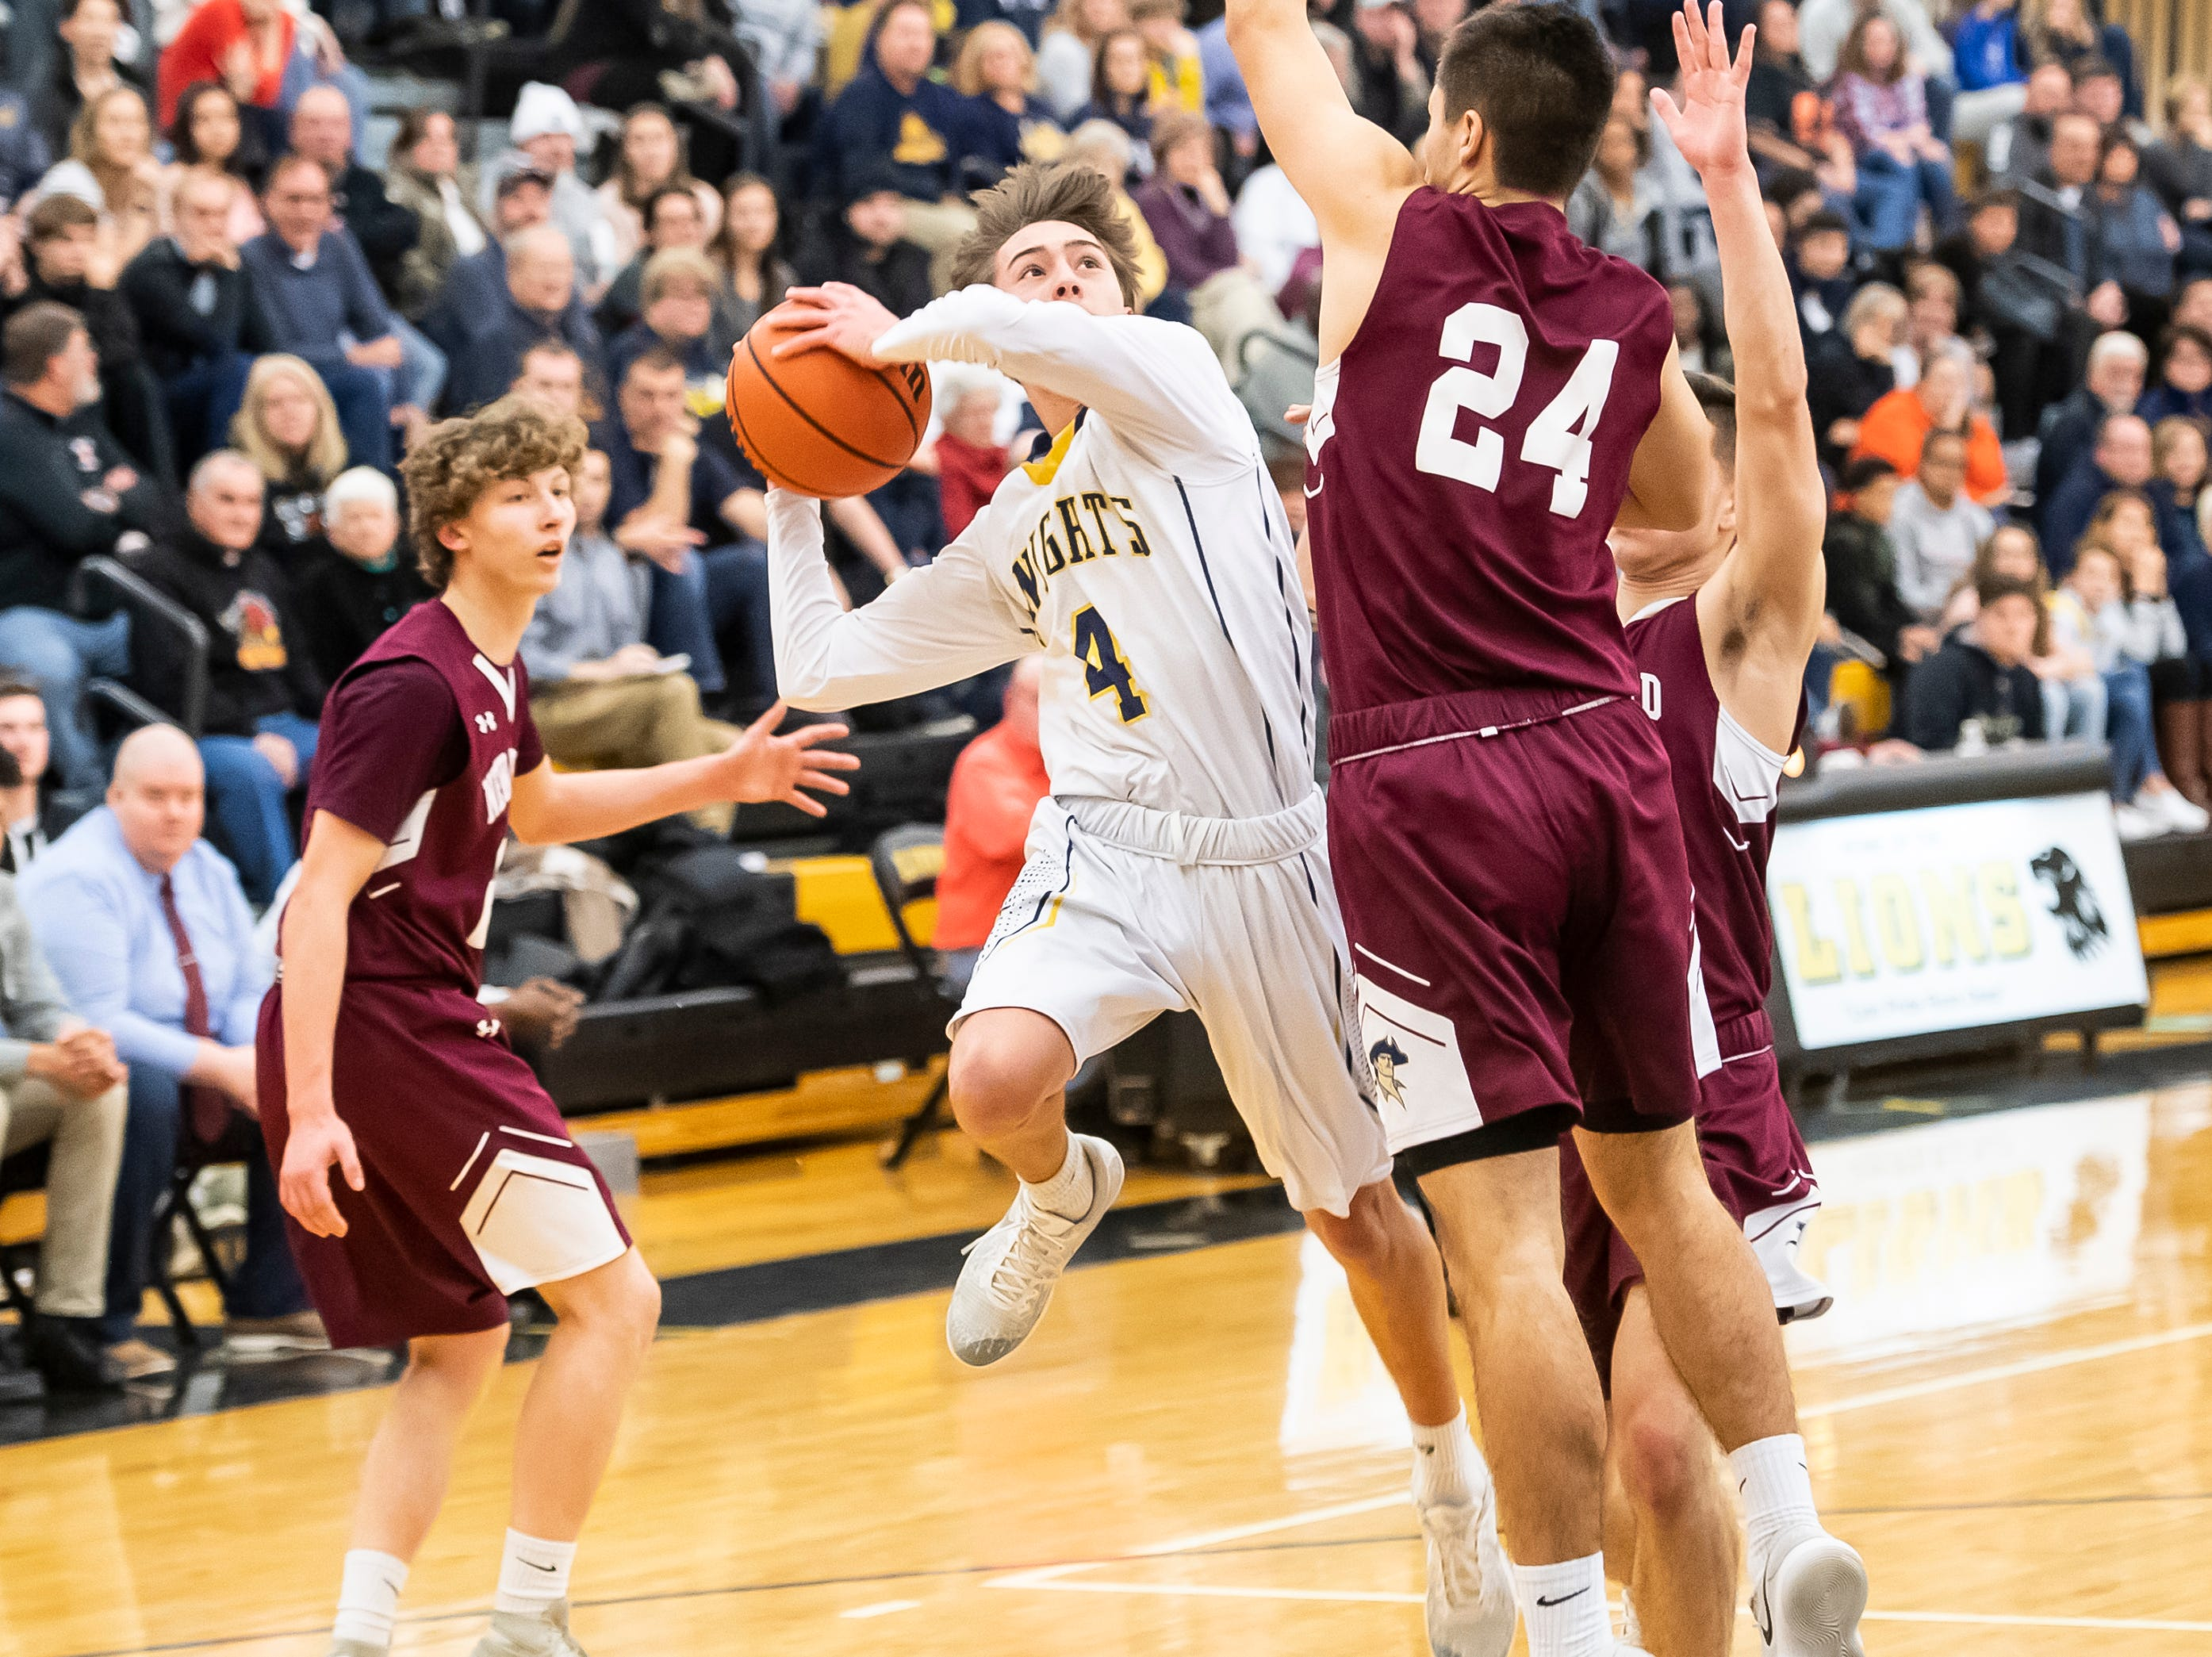 Eastern York's Trevor Seitz draws a foul while shooting a layup during play in a YAIAA quarterfinal game against New Oxford at Red Lion High School Saturday, February 9, 2019.